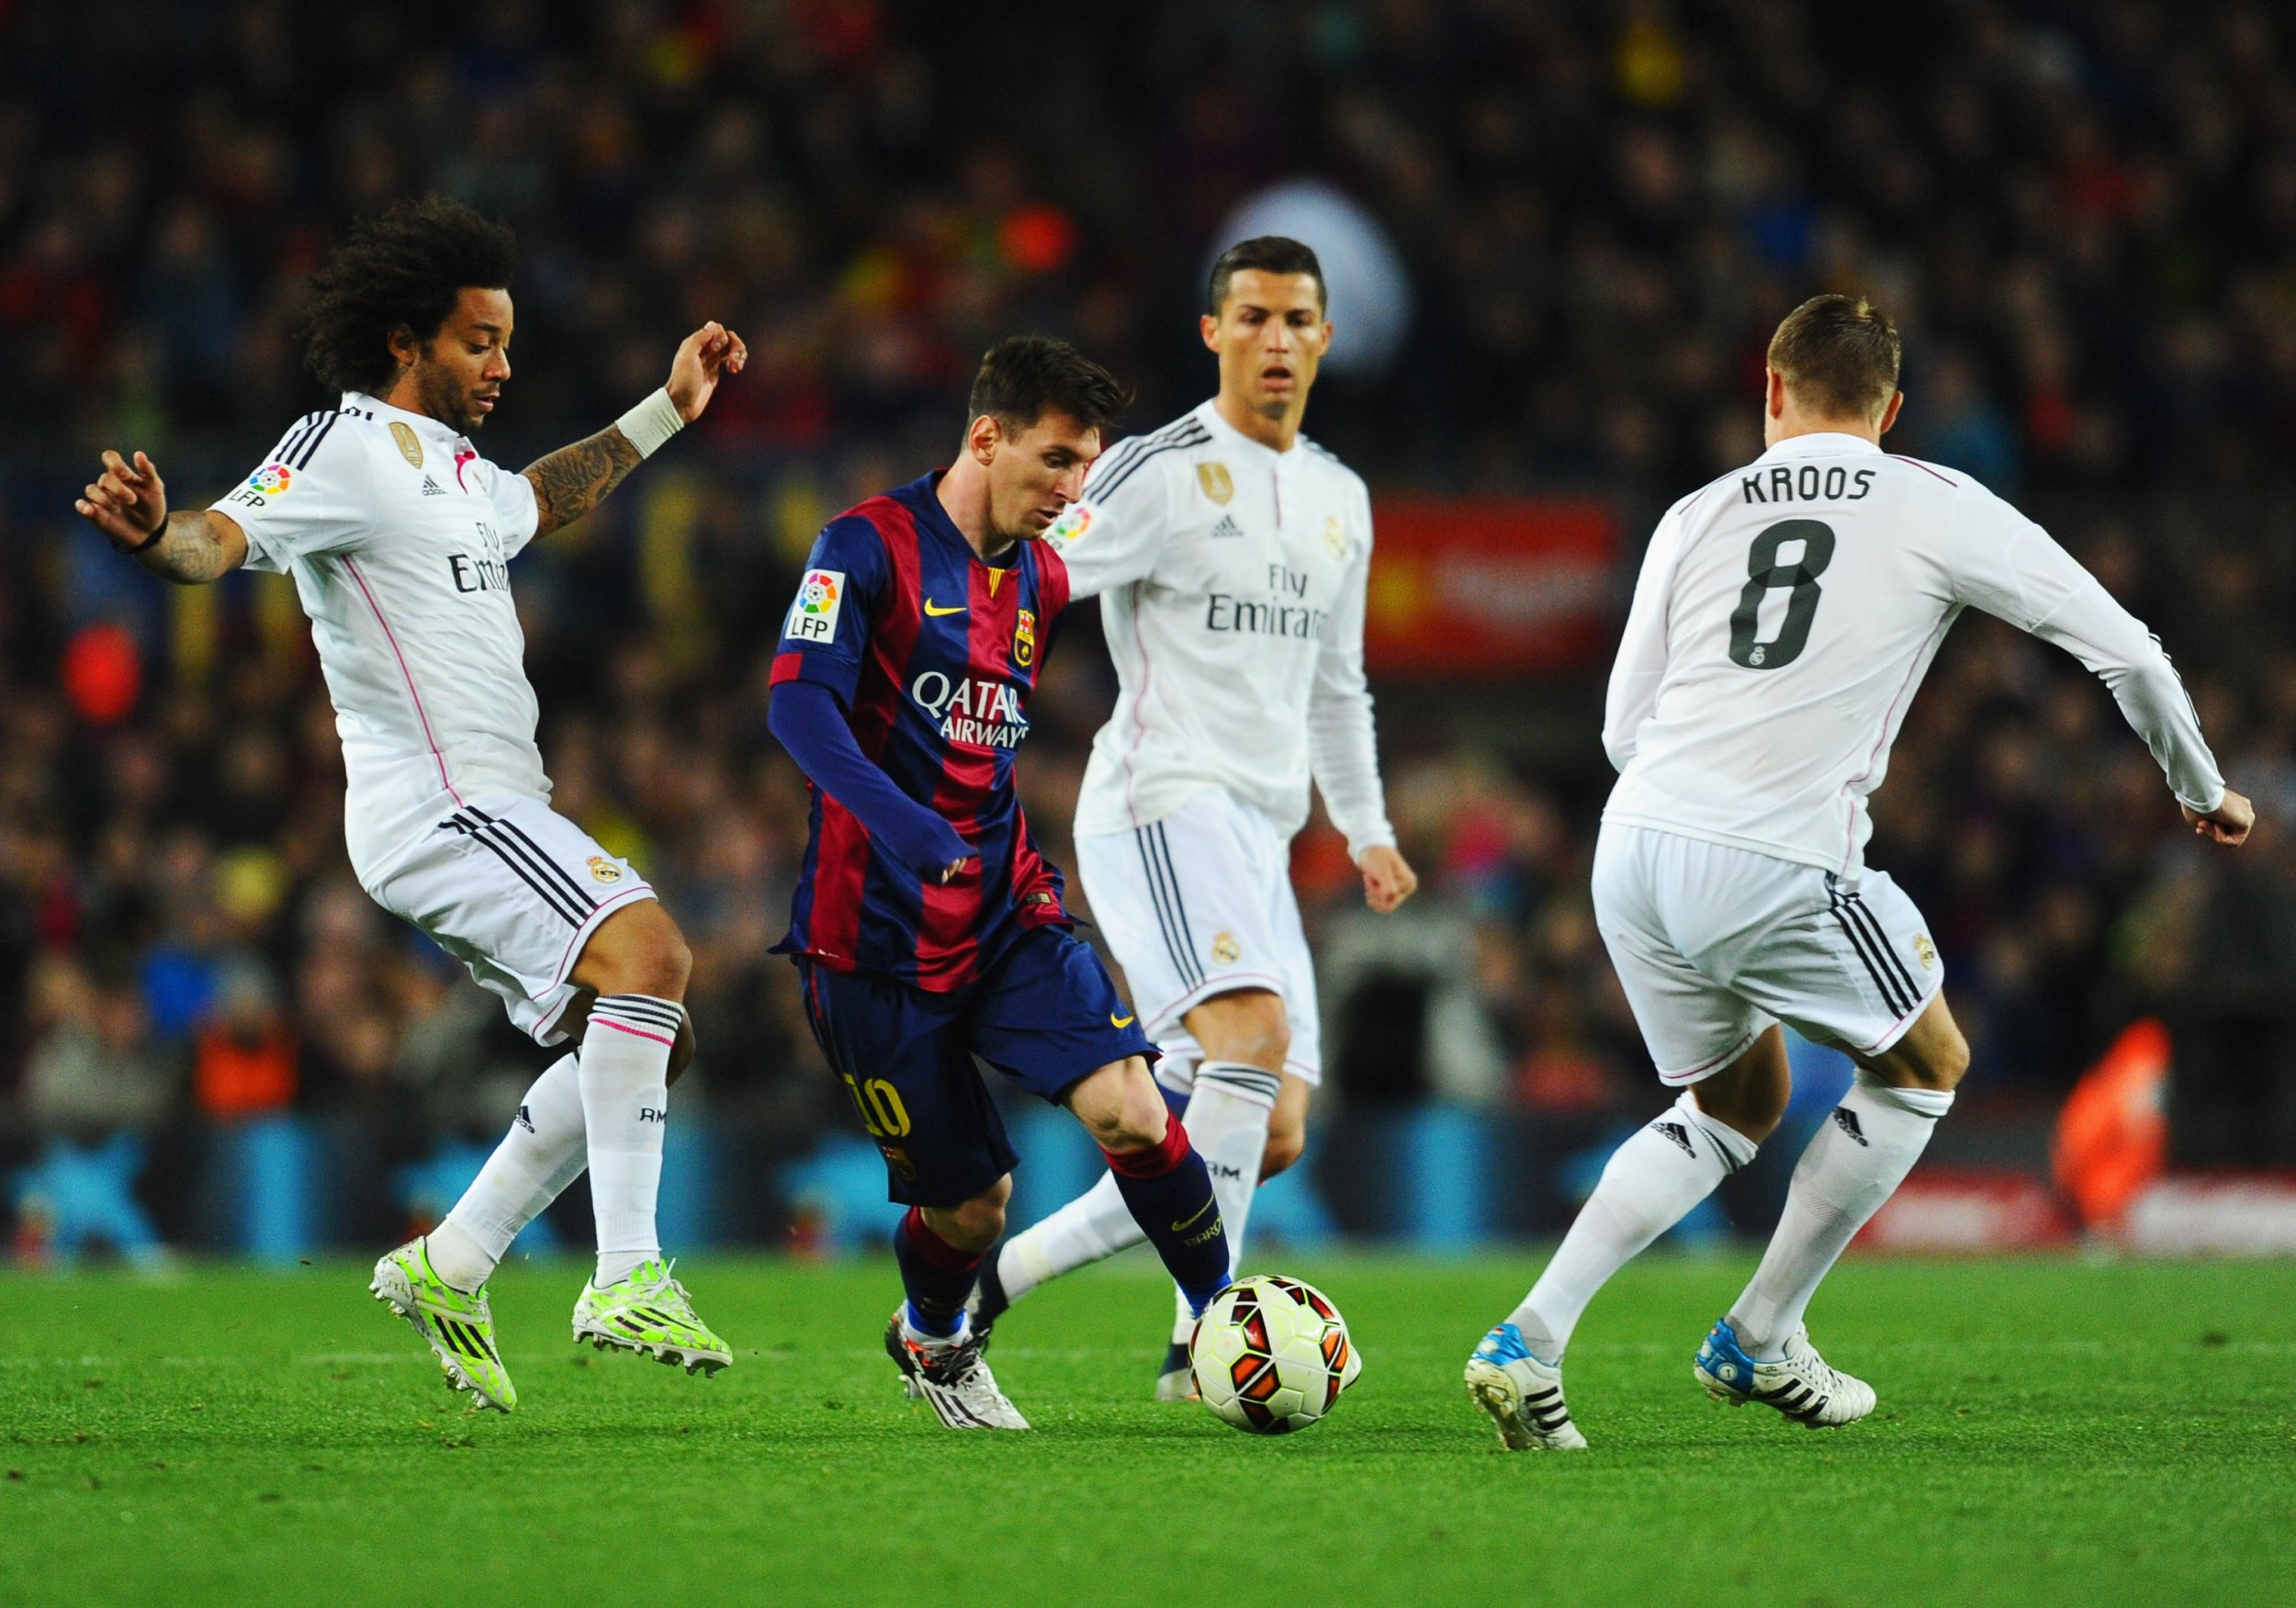 Barcelona and Real Madrid